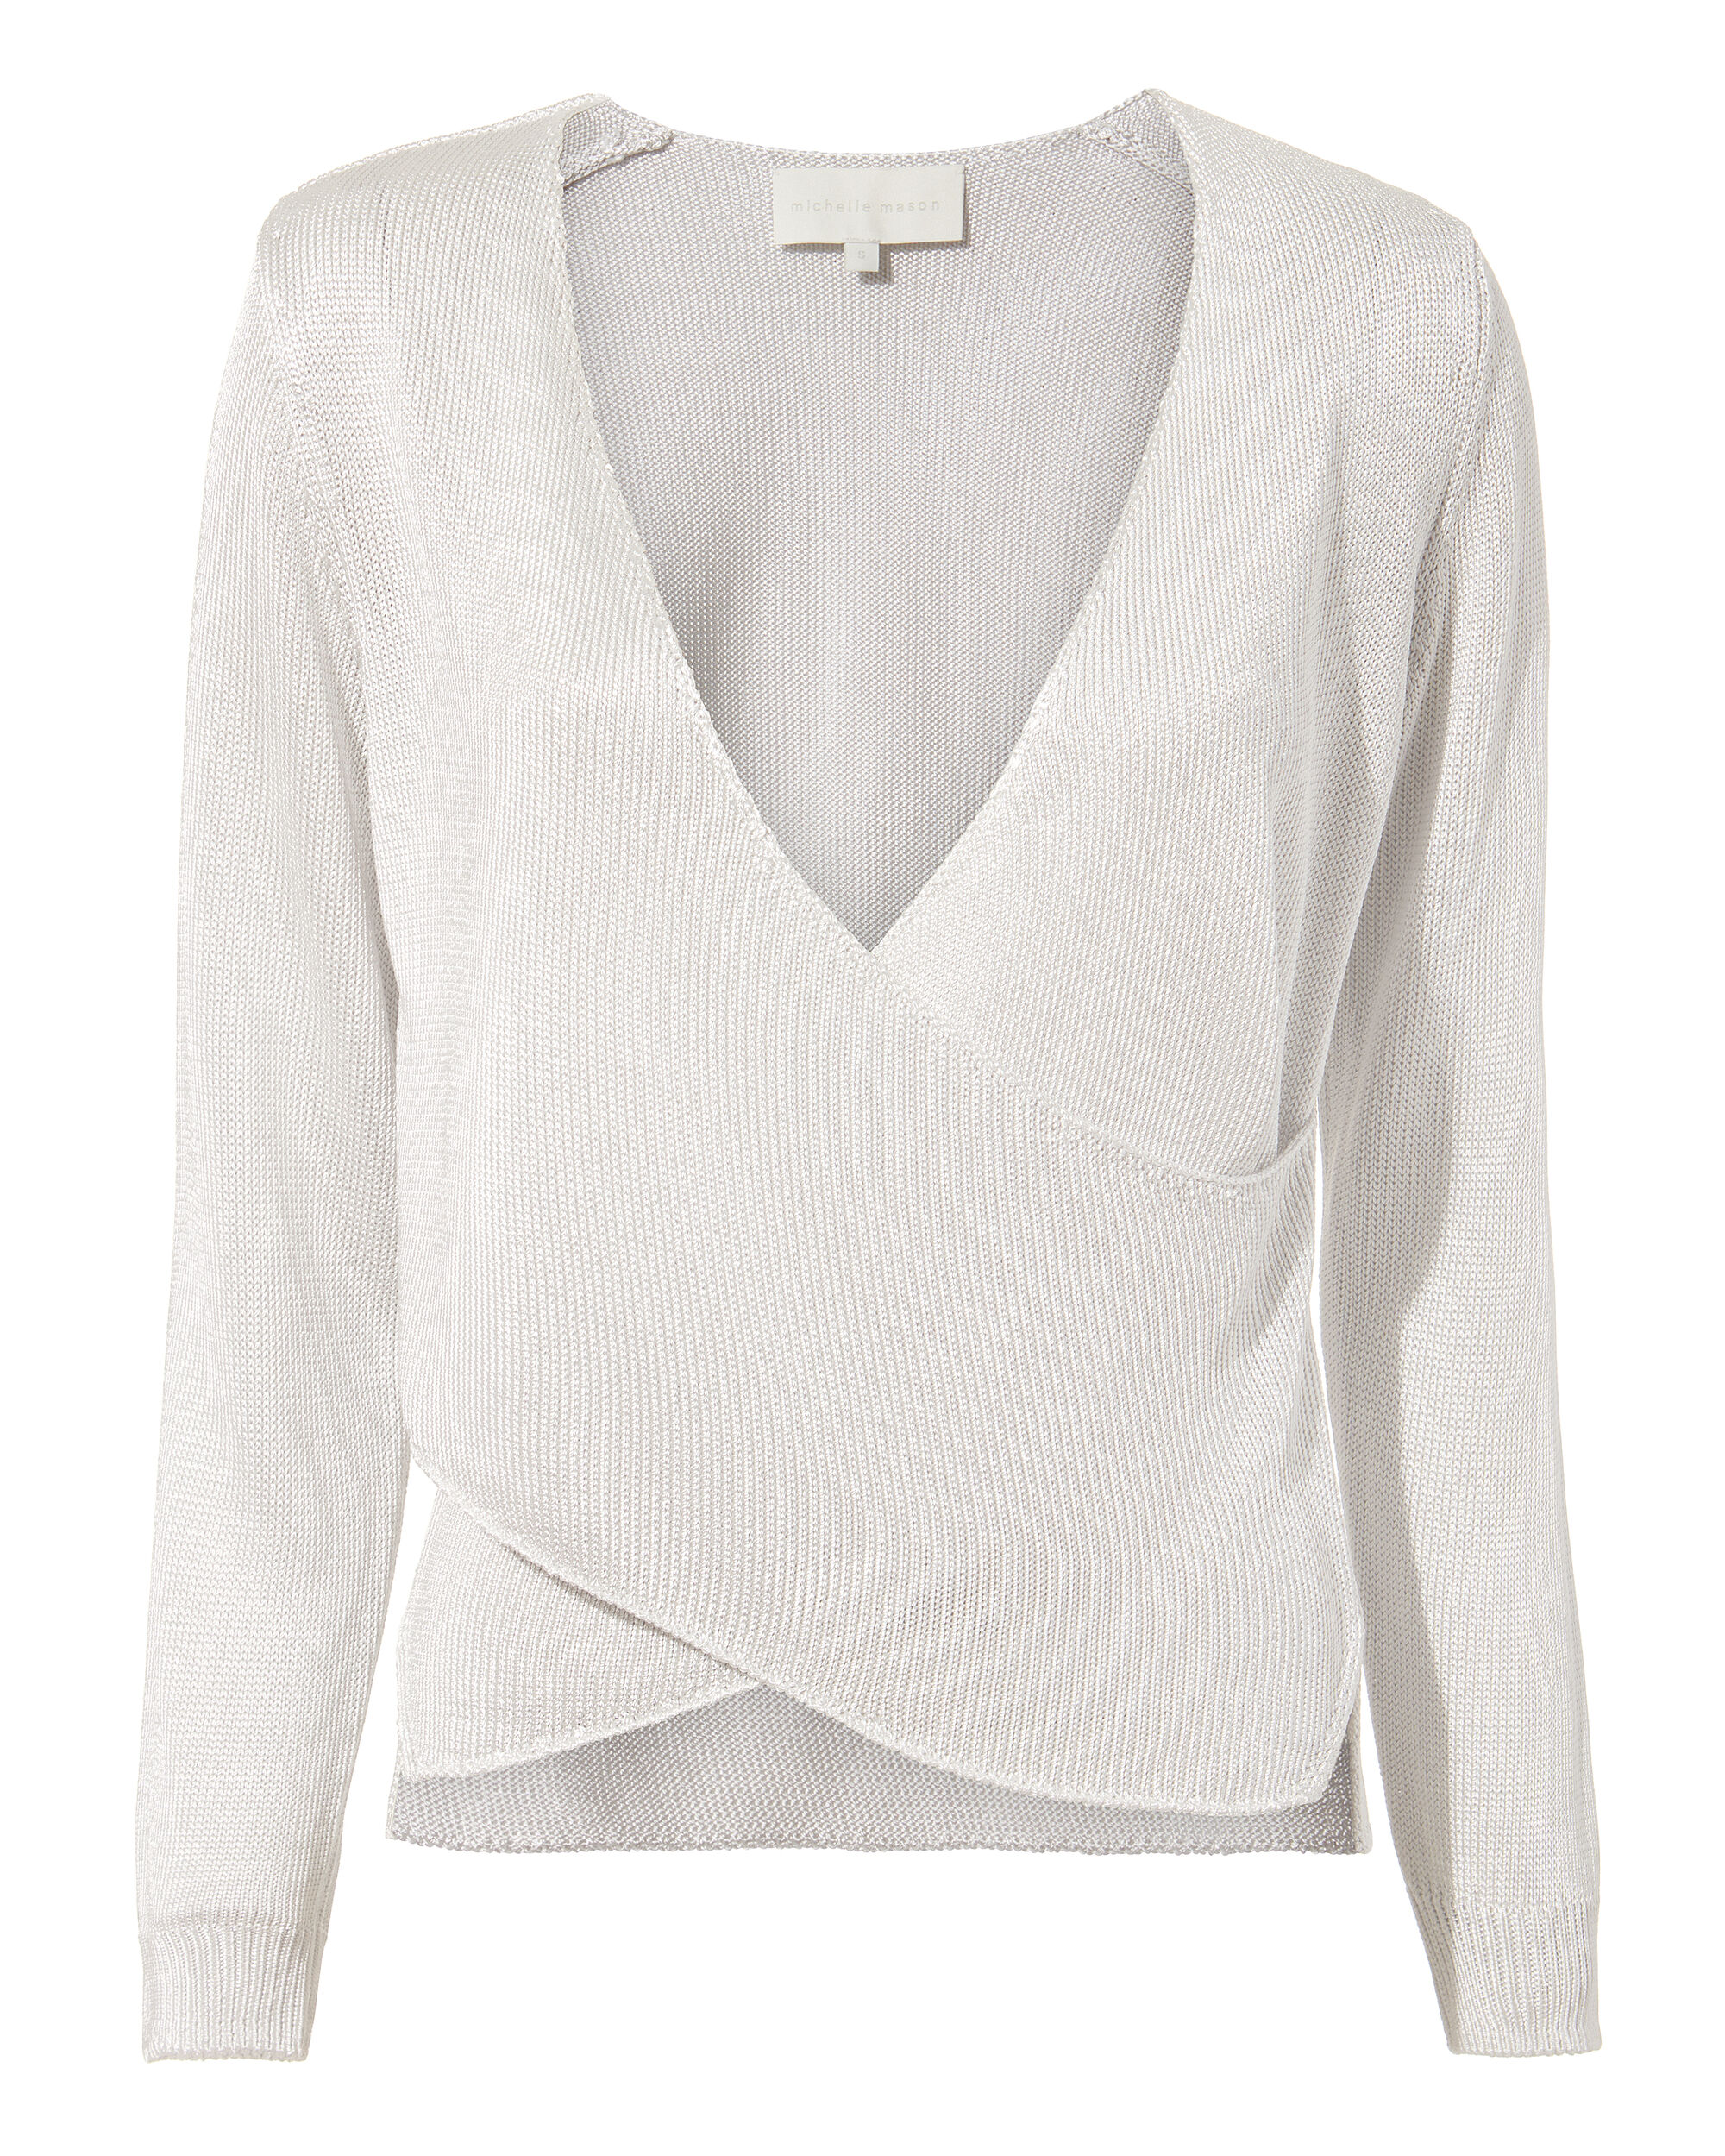 Cross Wrap Silver Sweater, SILVER, hi-res